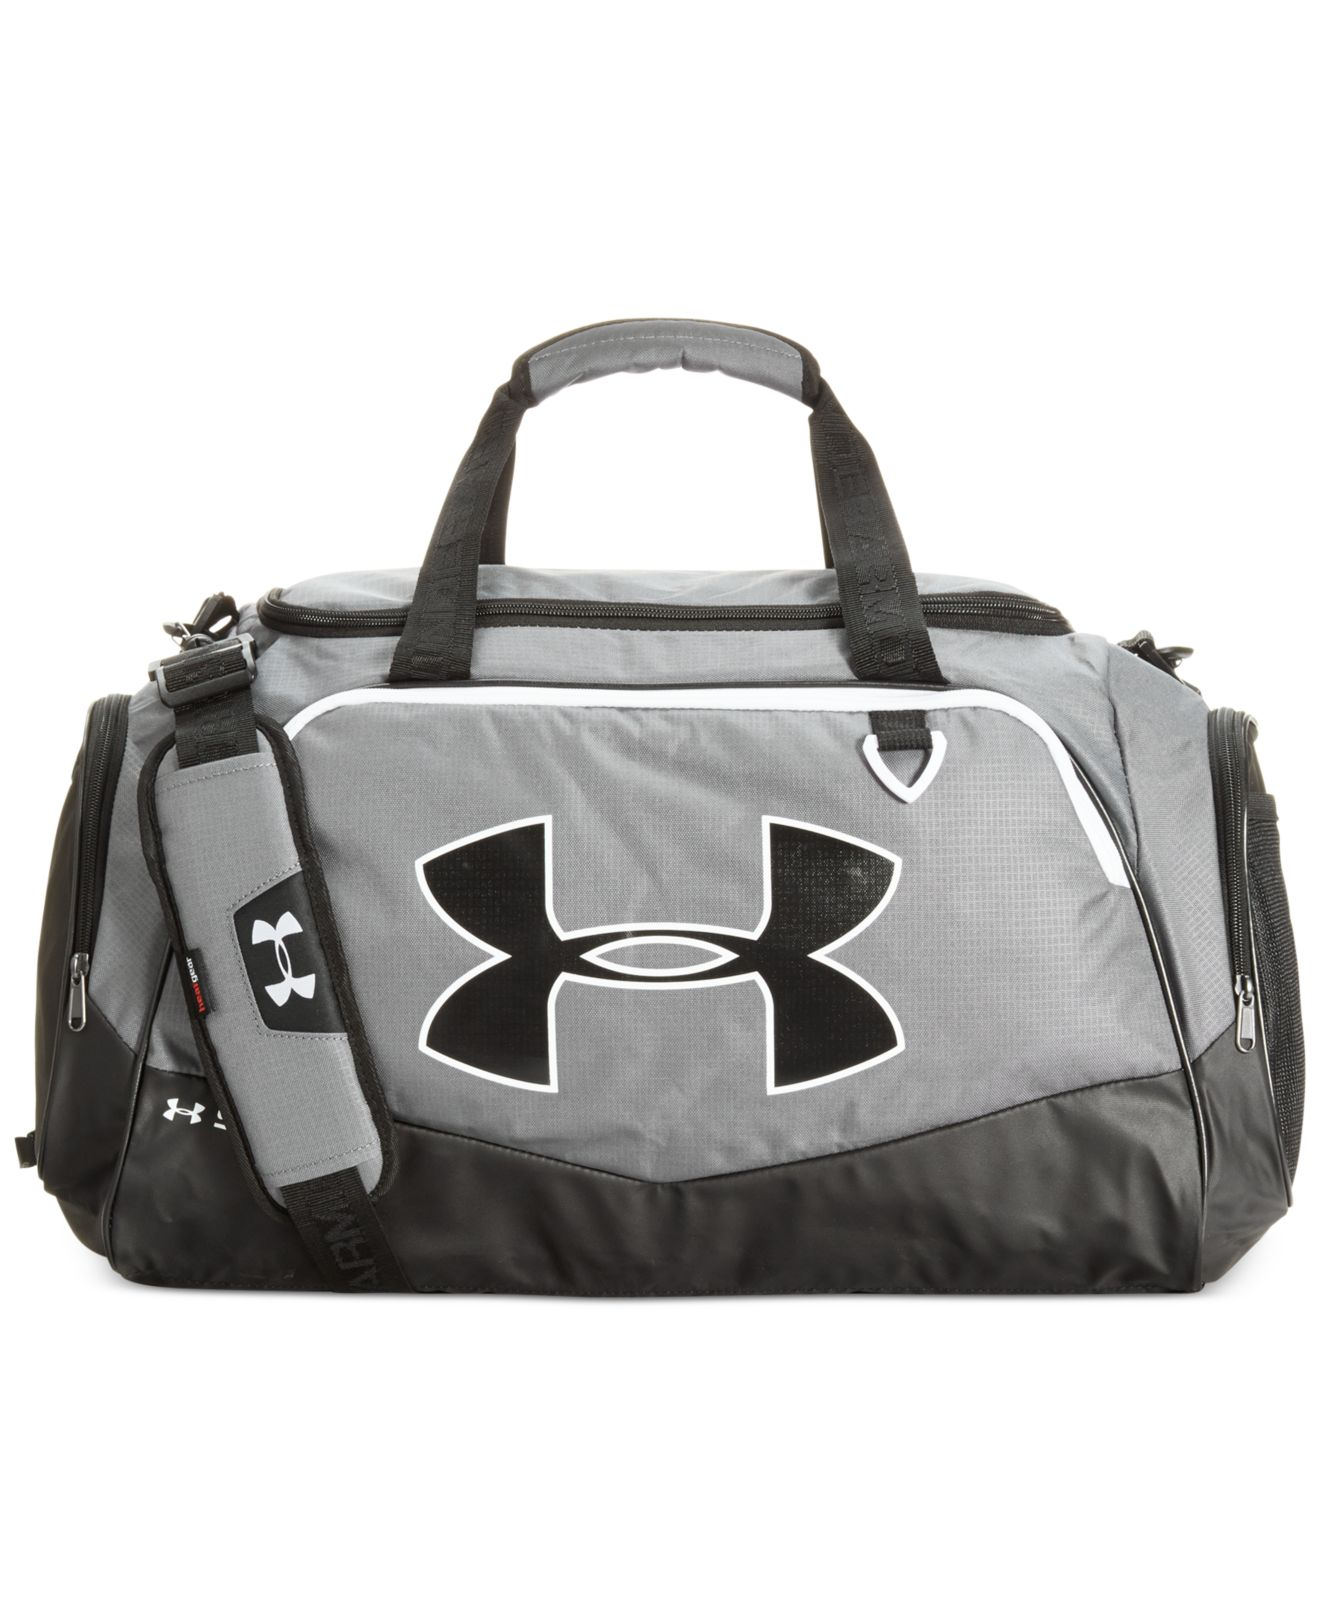 779582be3a Lyst - Under Armour Undeniable Medium Duffle Bag in Gray for Men